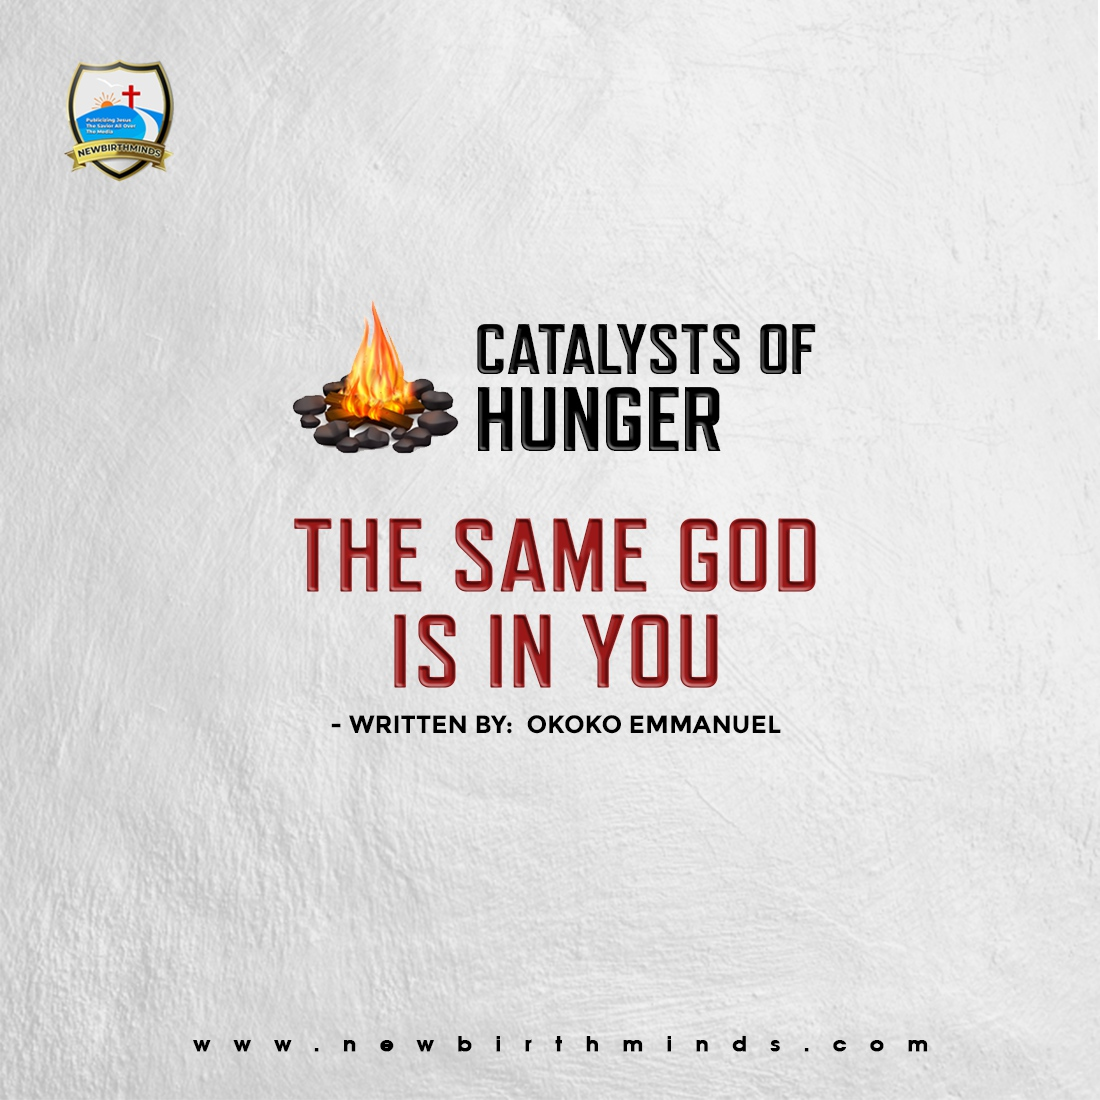 THE SAME GOD IS IN YOU